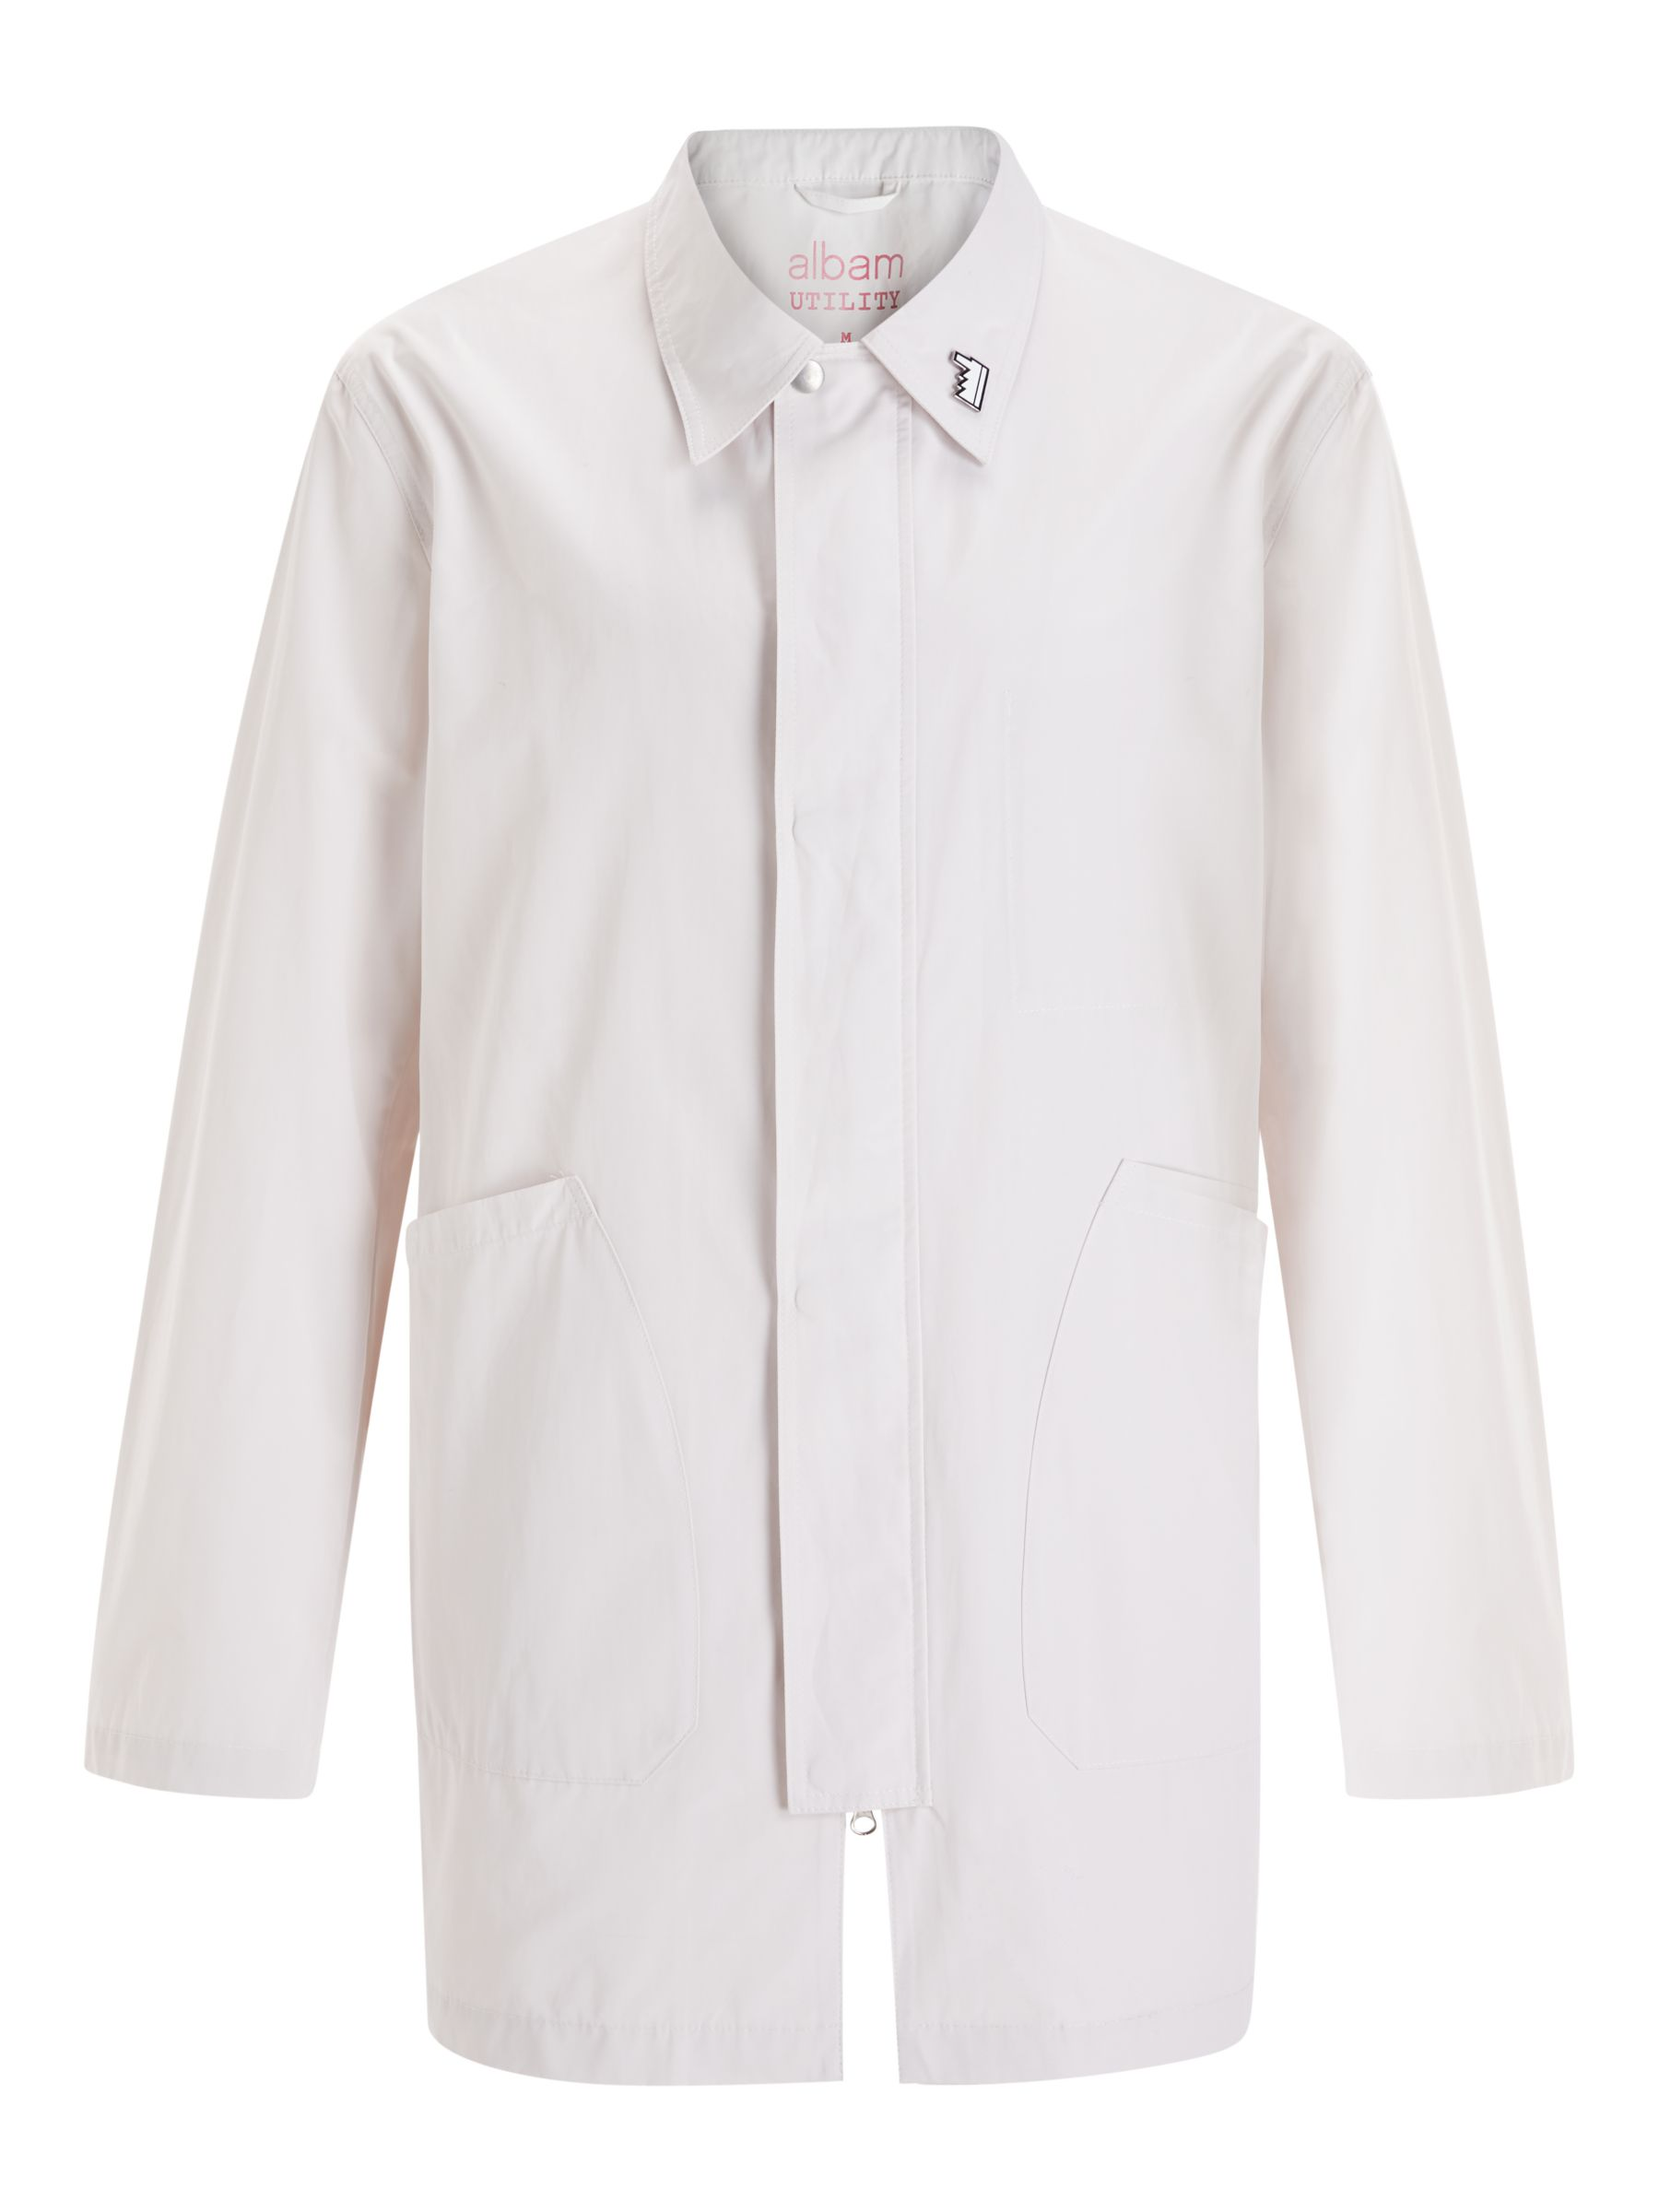 Buy Albam Utility Cotton-Blend Foreman Jacket, White, S Online at johnlewis.com